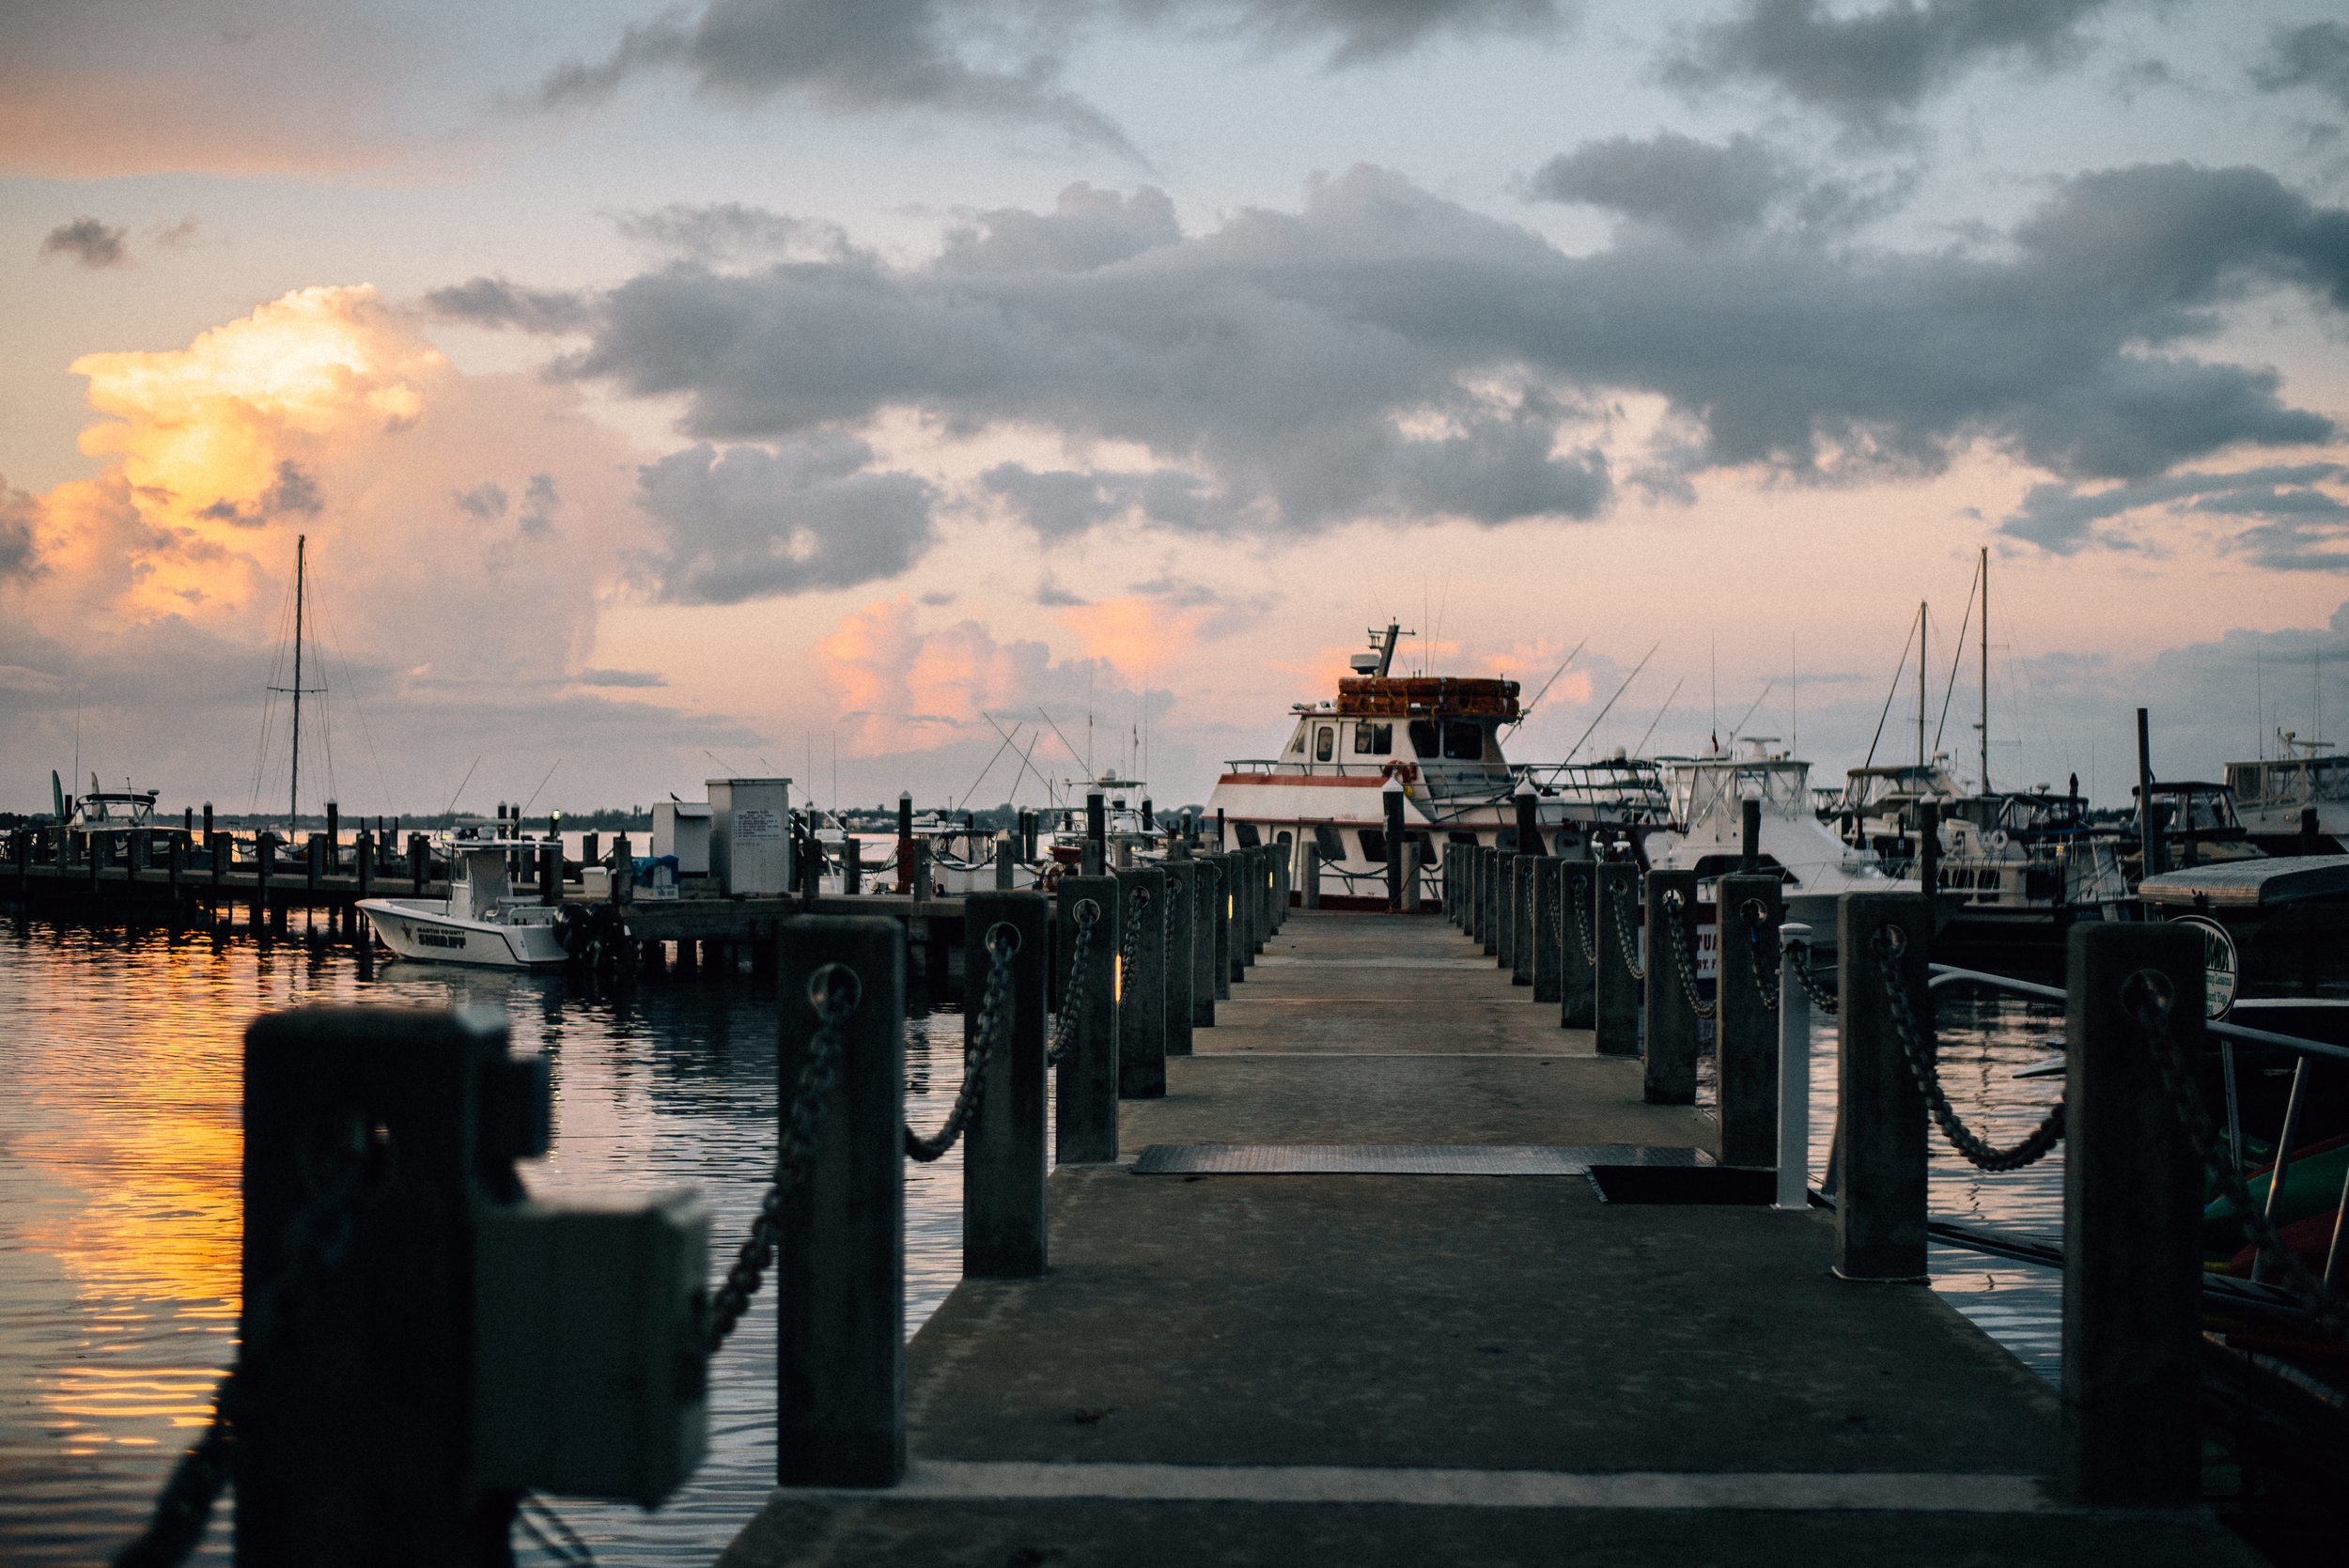 Port-St-Lucie-Waterfront-marriott-Boat-Fishing-Trip-001